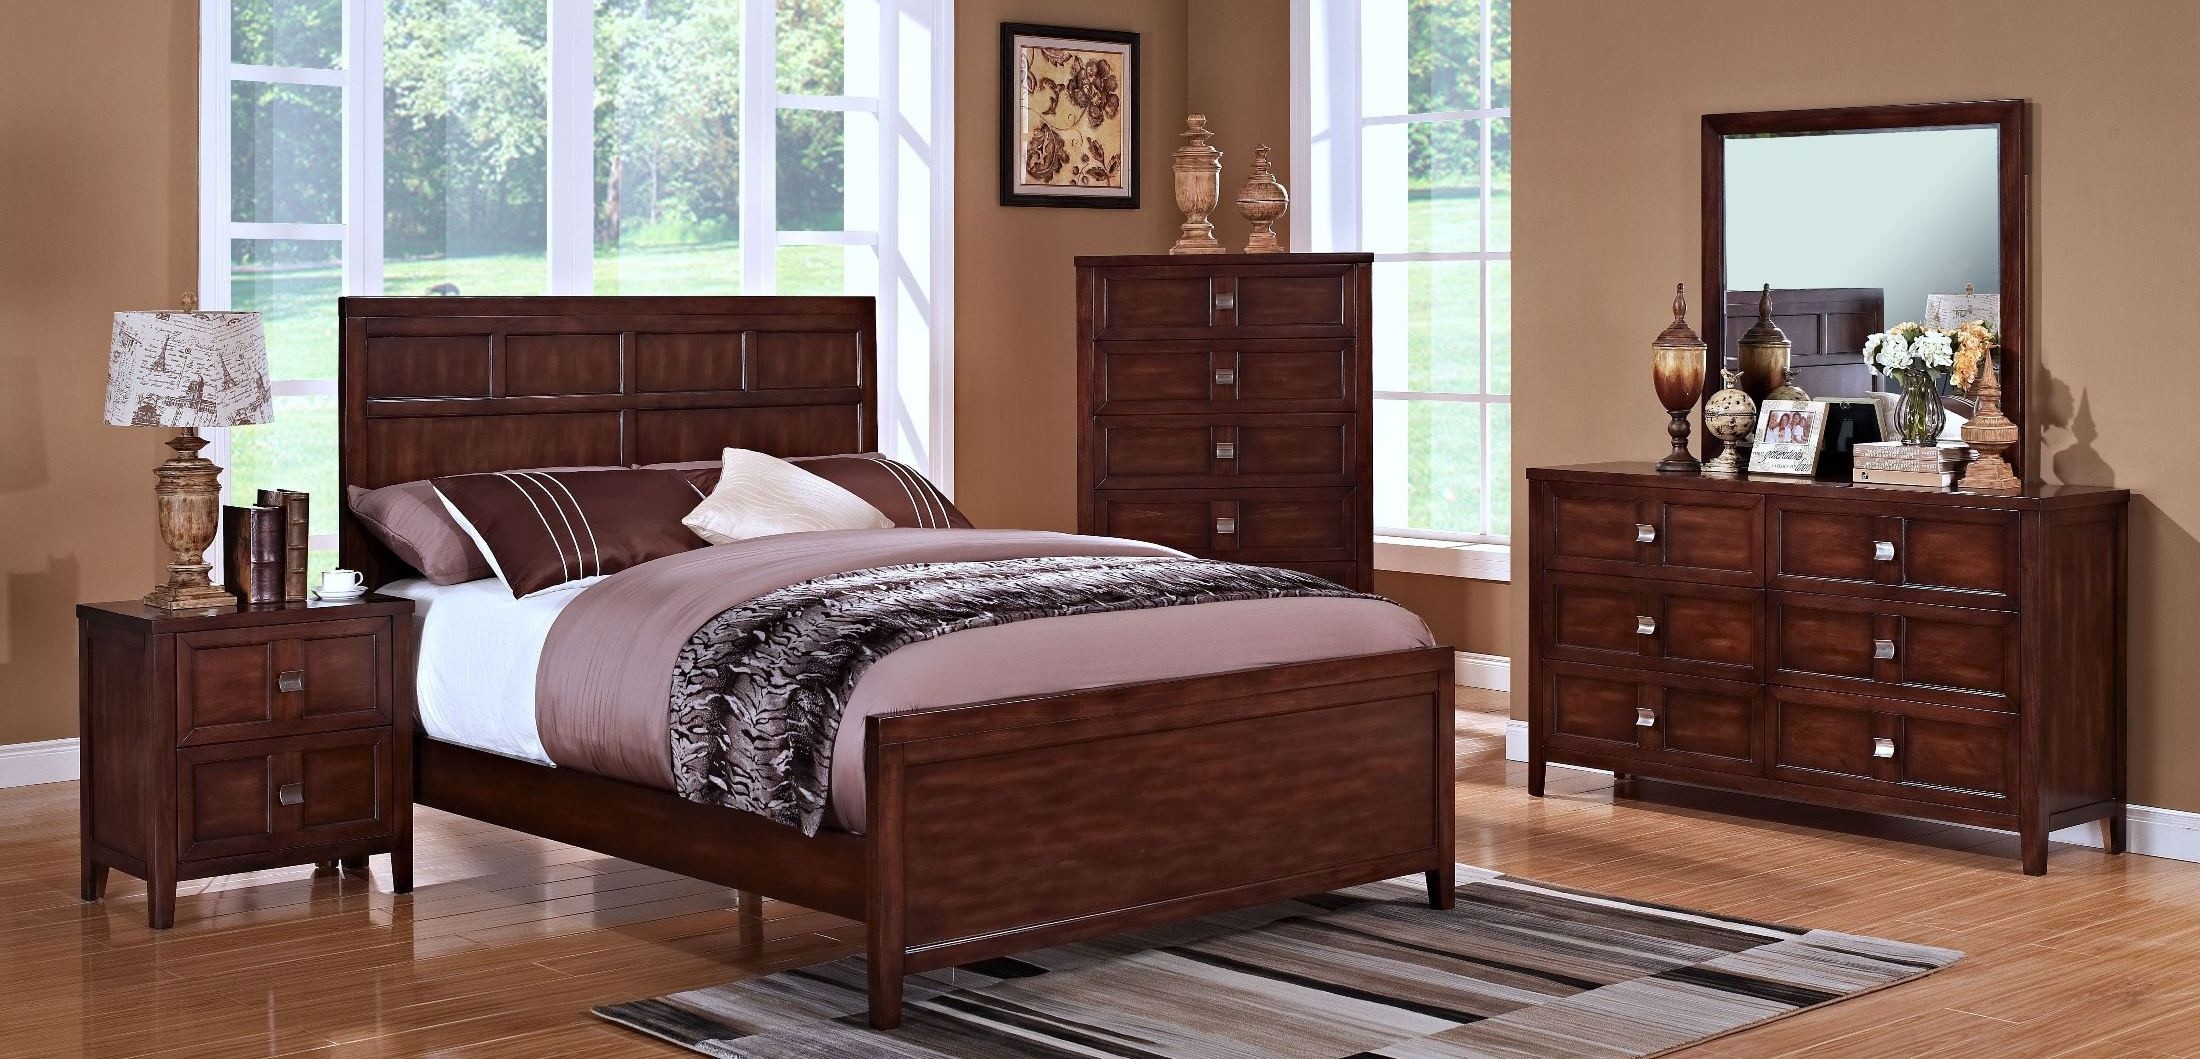 Ridgecrest distressed walnut youth panel bedroom set from for Walnut bedroom furniture